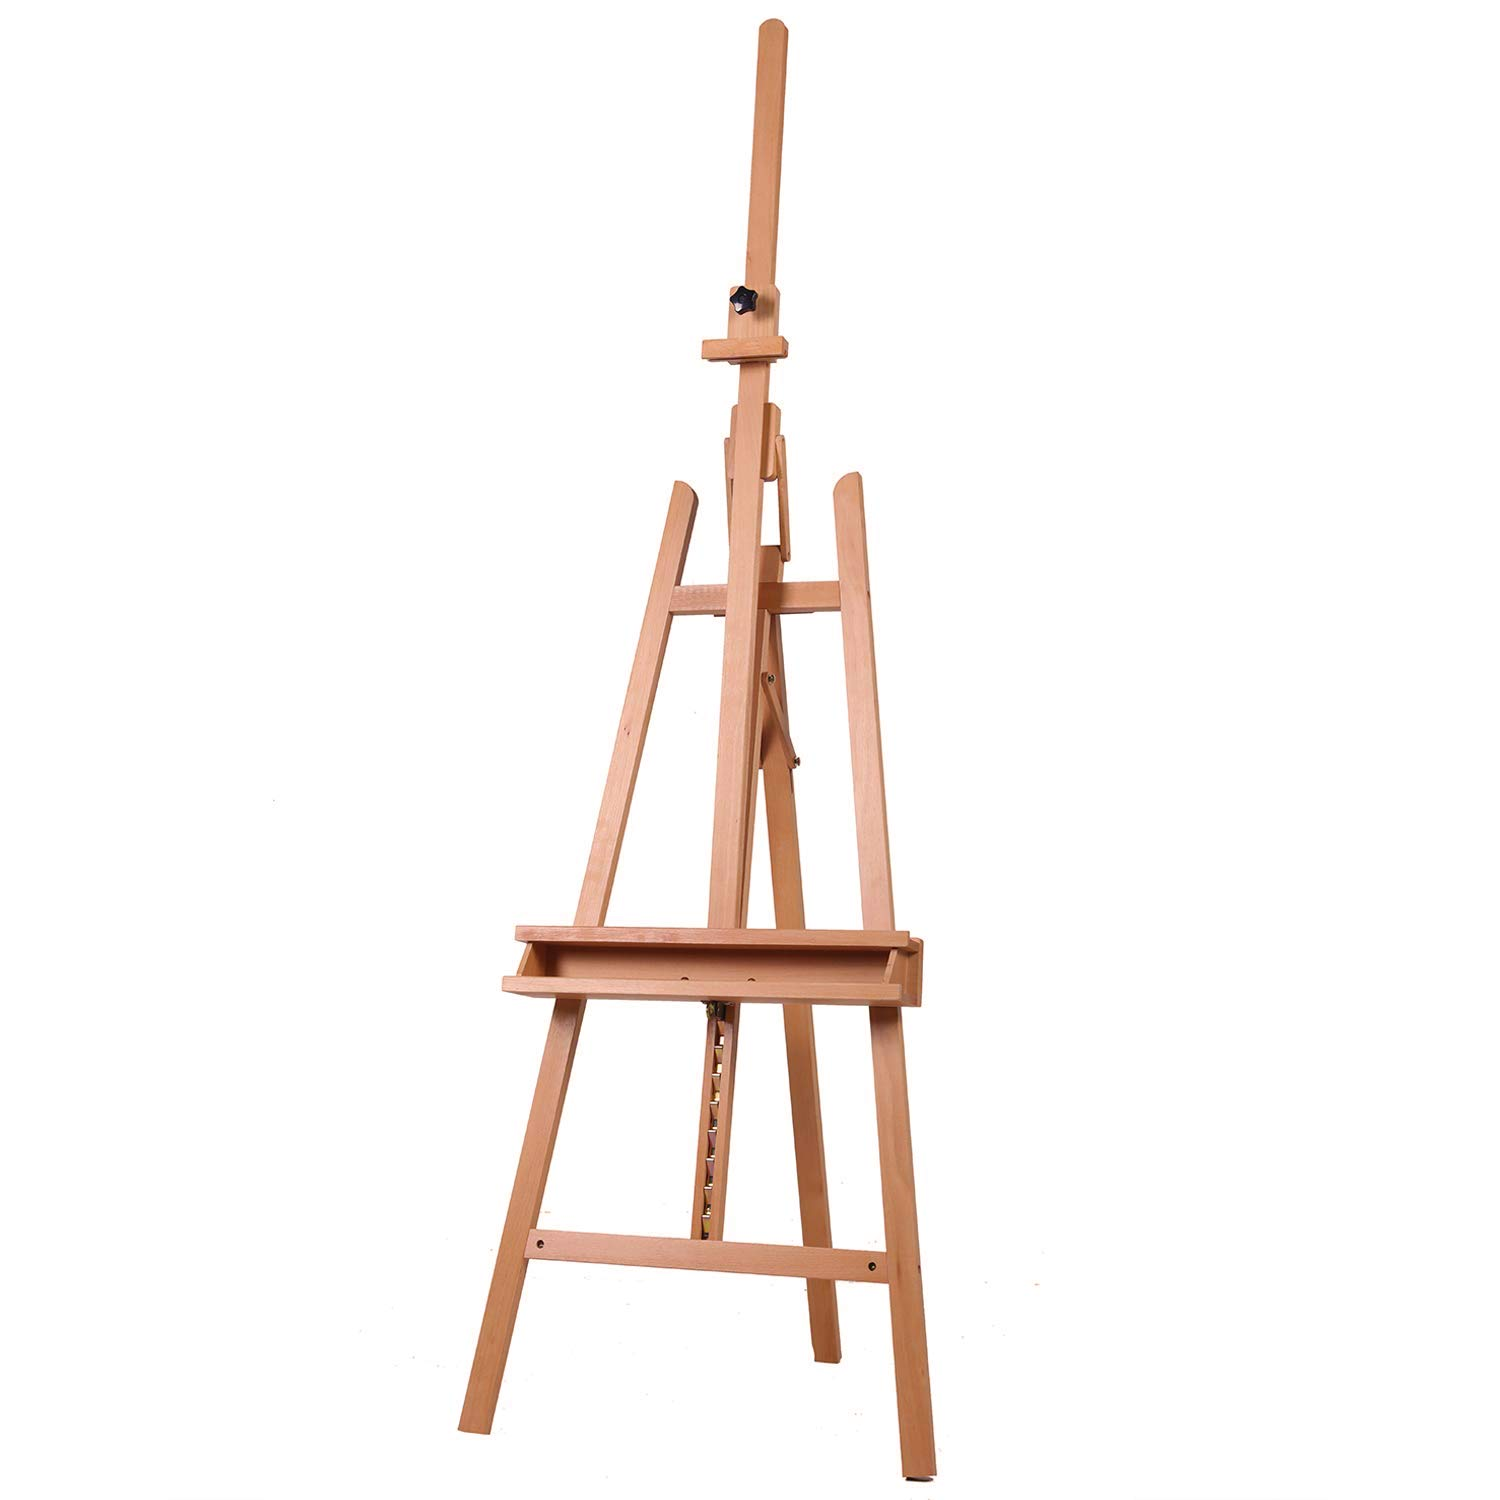 ATWORTH Large Painters Easel Adjustable Beech Wood Artist Easel, Studio Easel for Adults with Brush Holder, Holds Canvas up to 48'' by ATWORTH (Image #7)